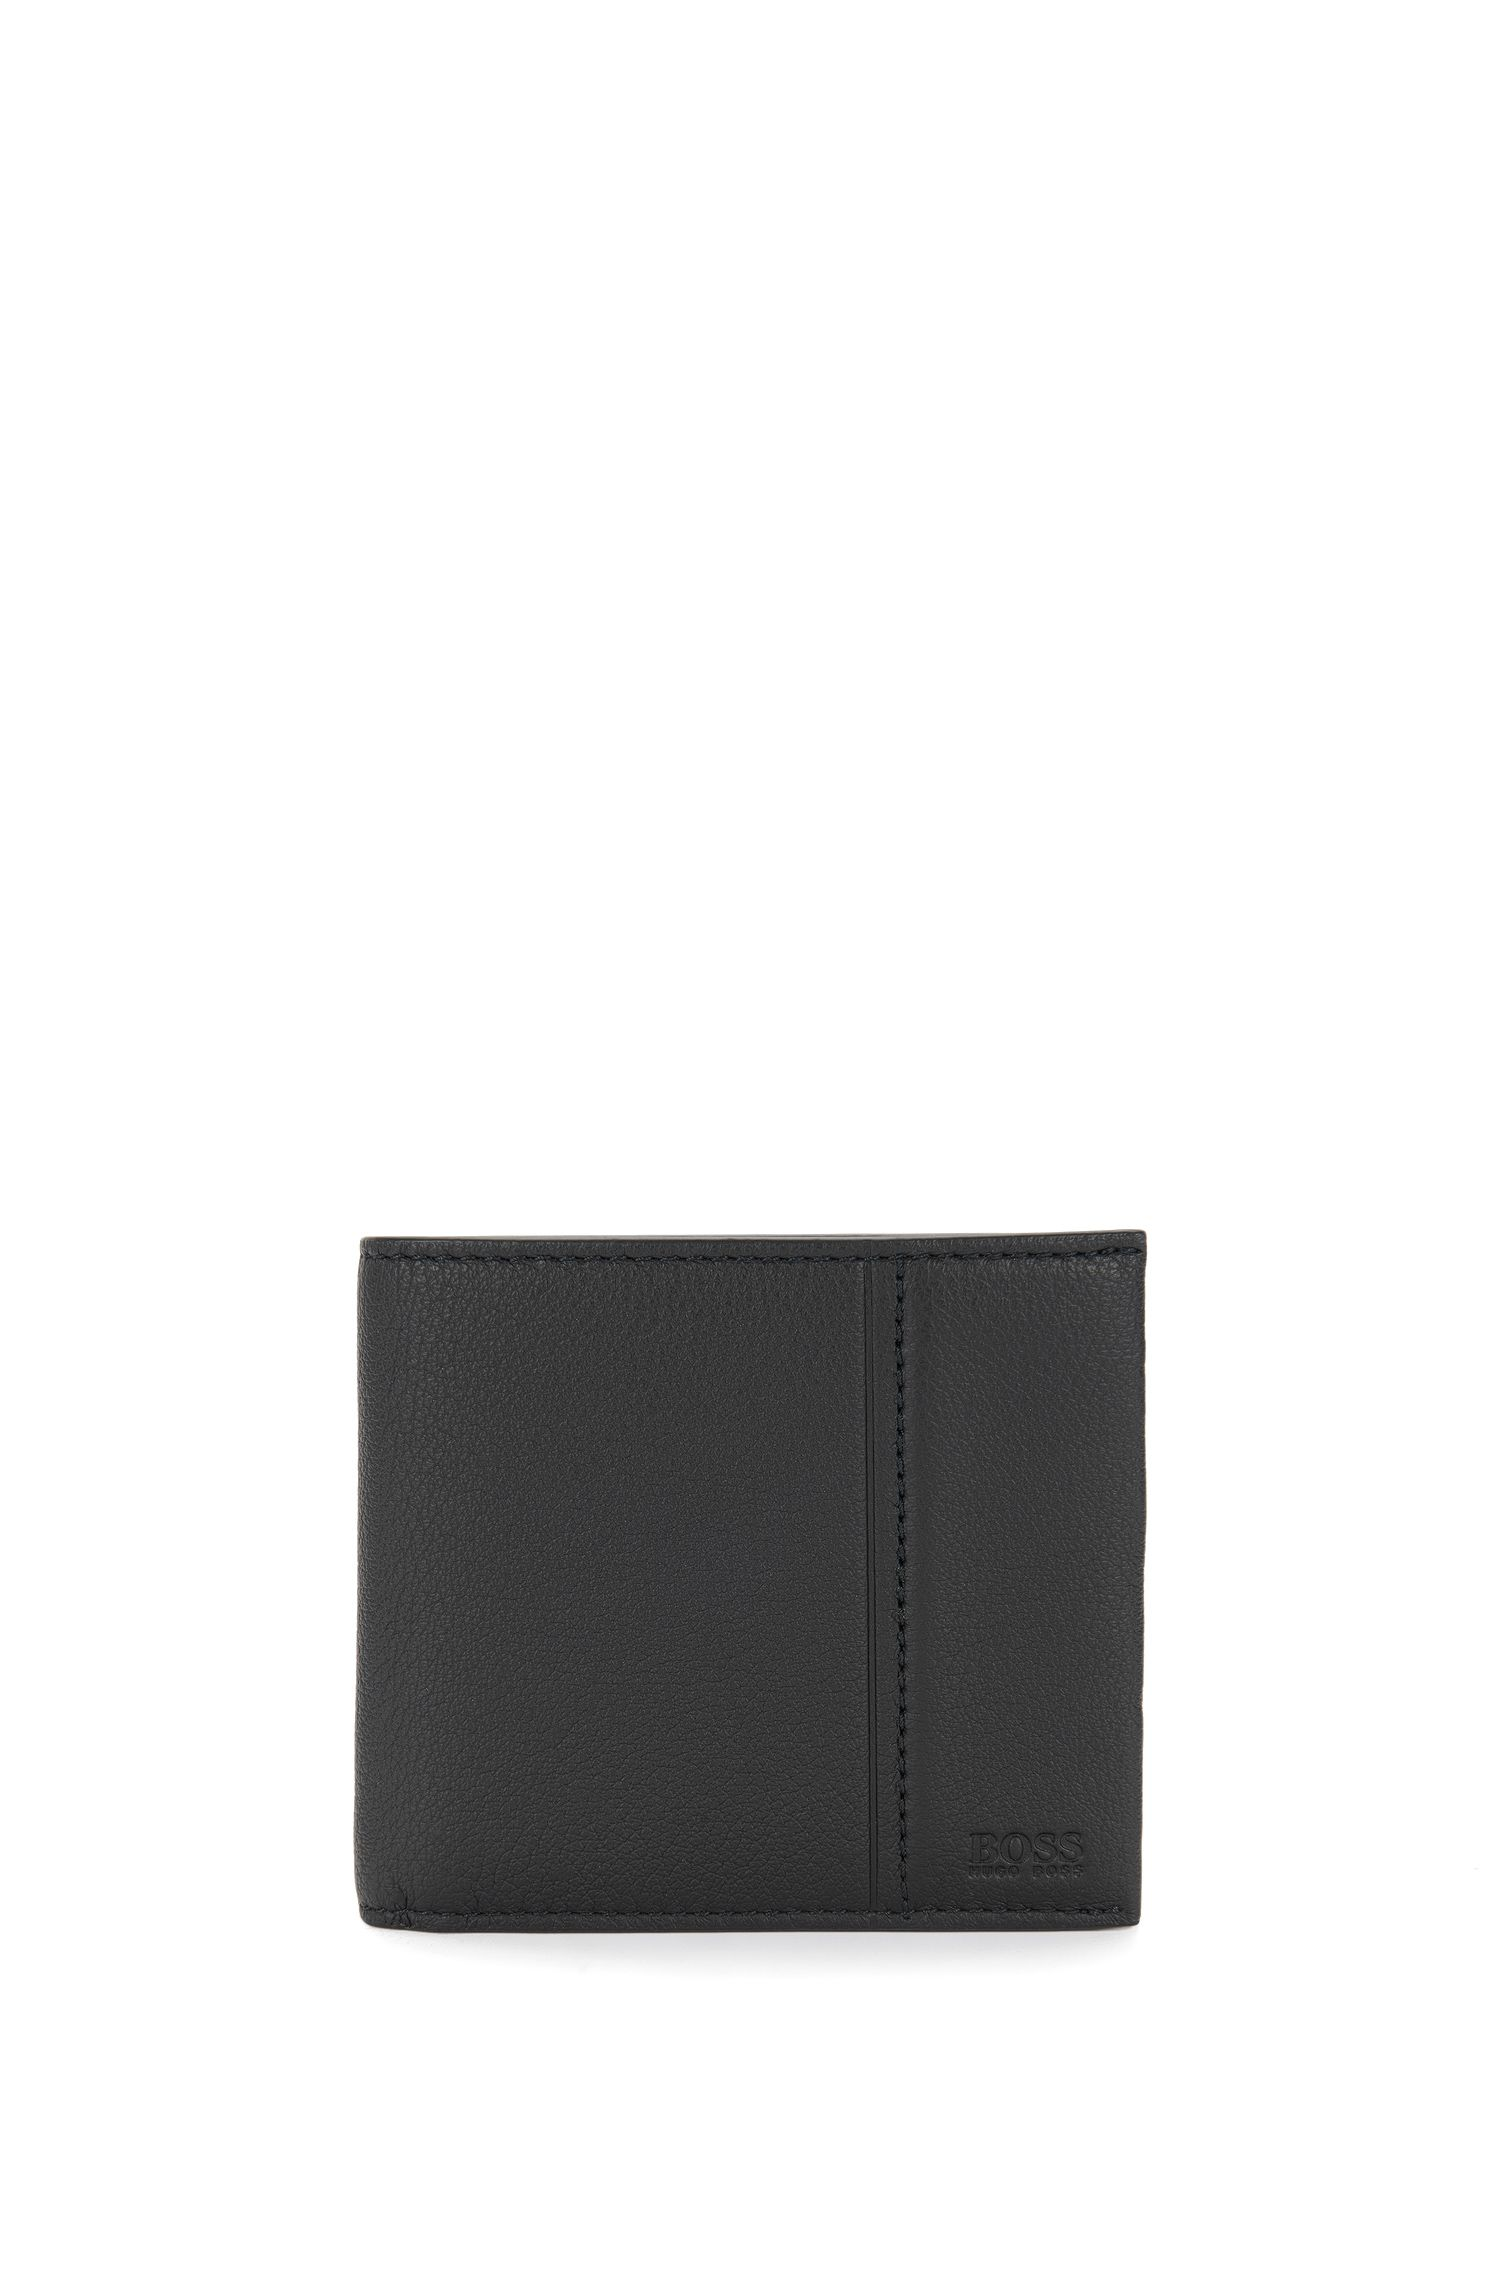 Leather Billfold Wallet | Traveller 4 CC Coin